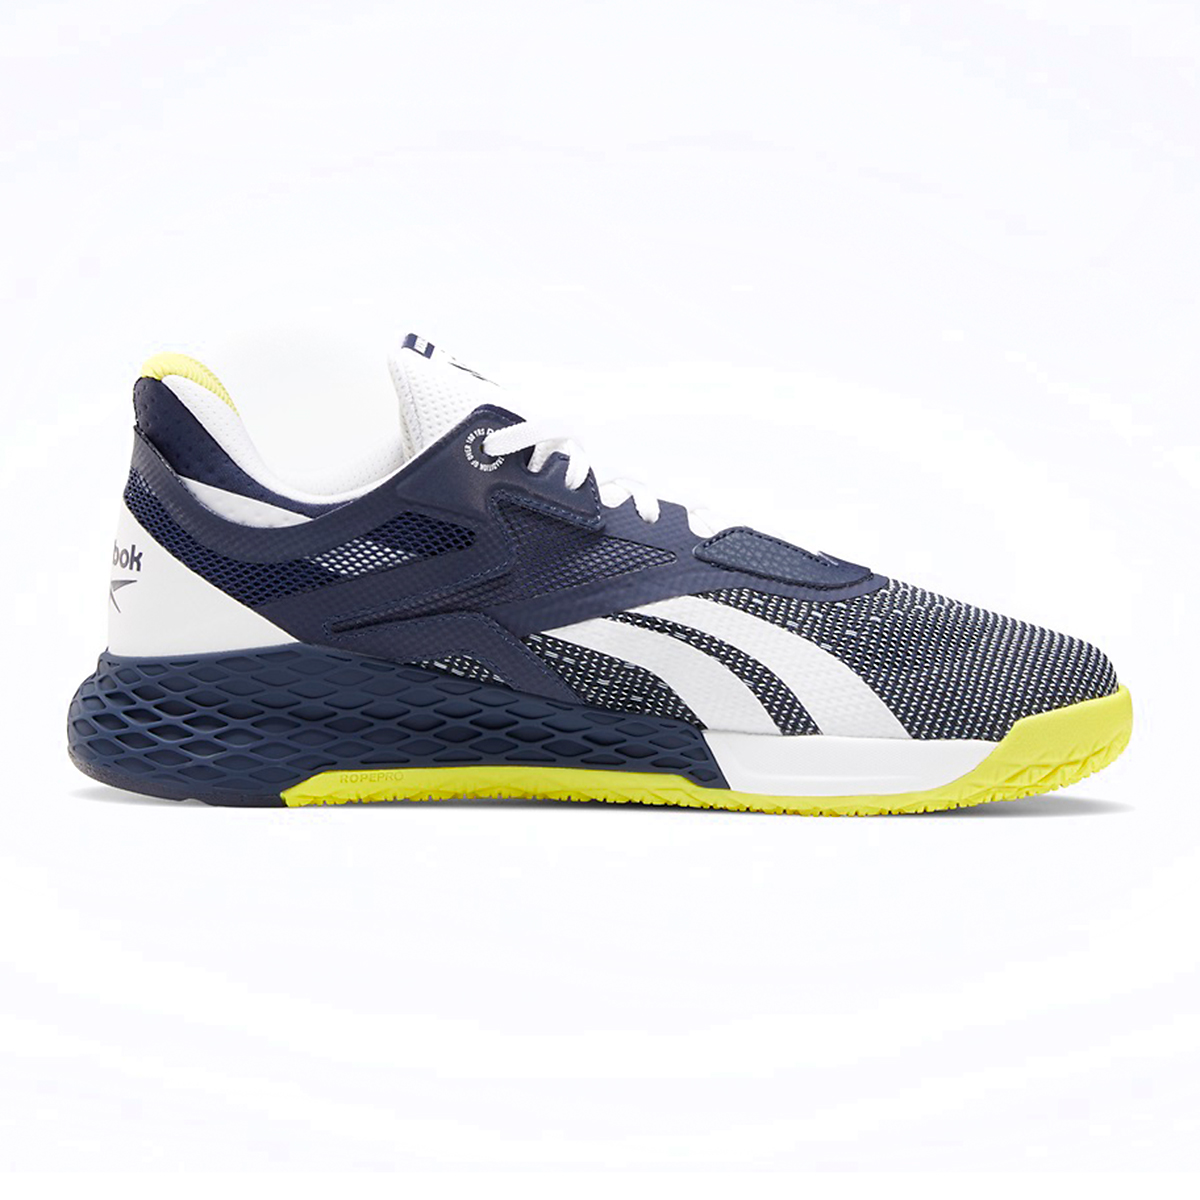 Men's Reebok Nano X Training Shoe - Color: Vector Navy/White/Chartreuse - Size: 6.5 - Width: Regular, Vector Navy/White/Chartreuse, large, image 1